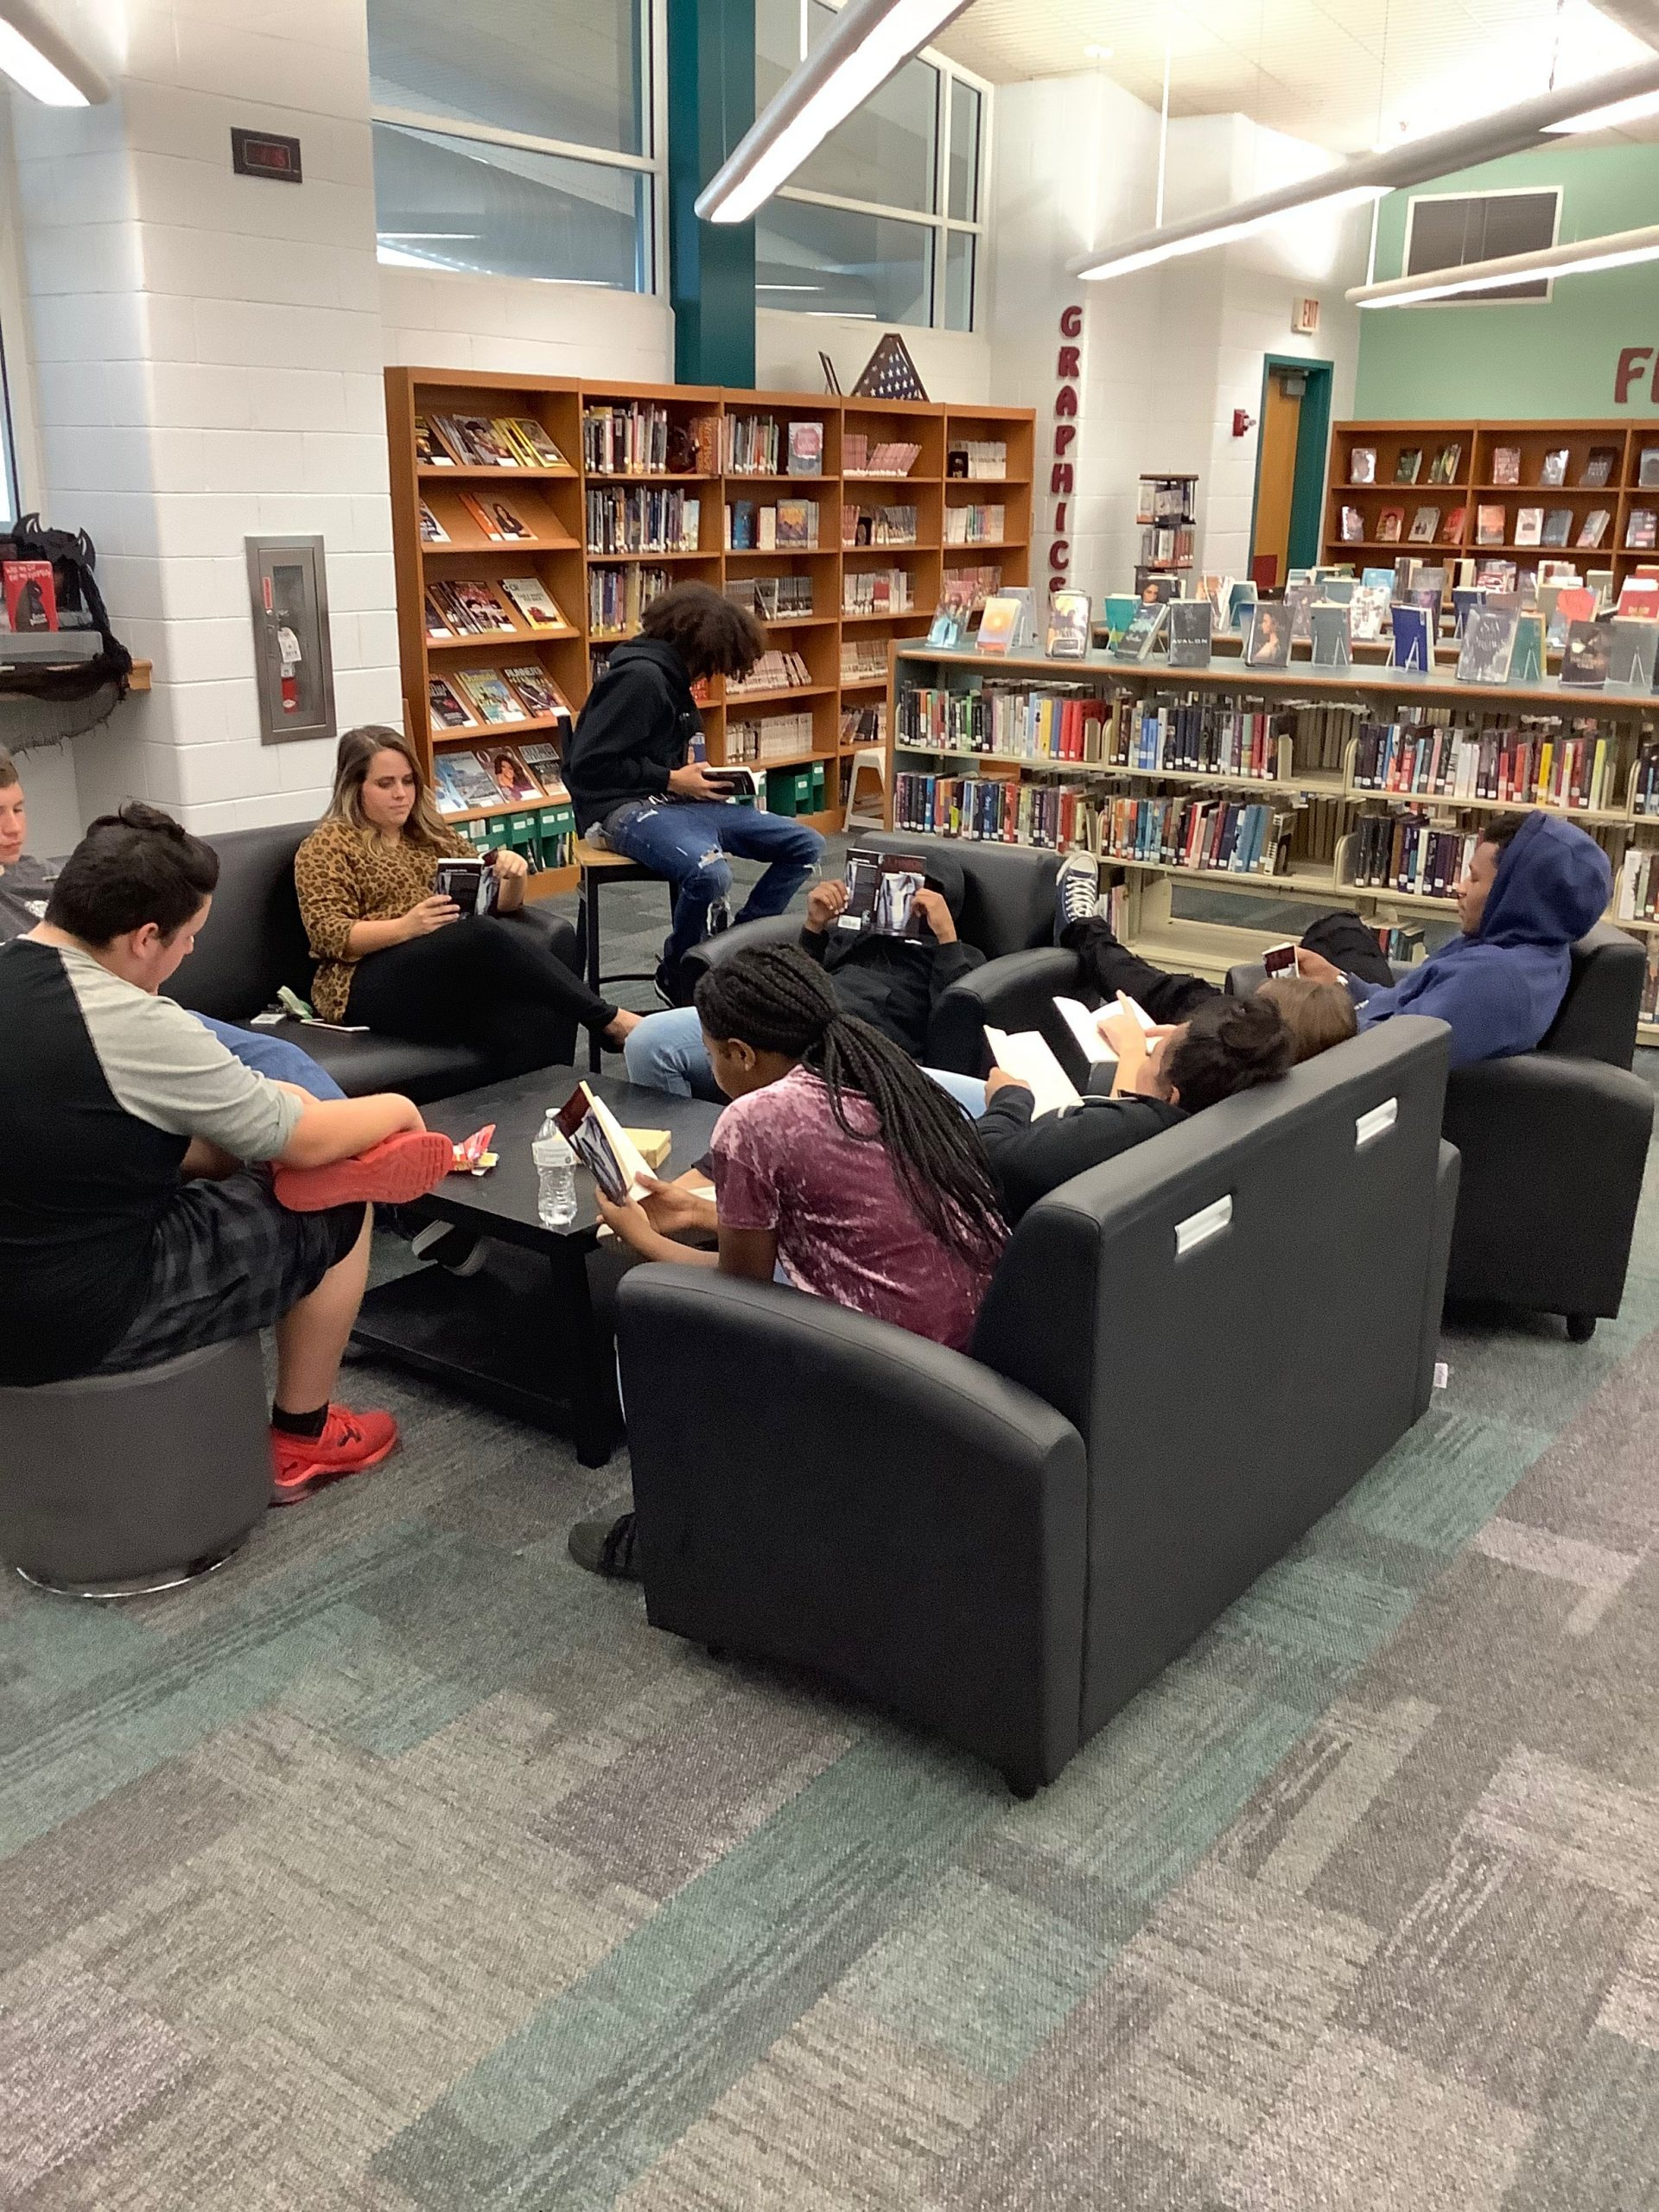 a group of students sitting on couches and chairs in the library reading books